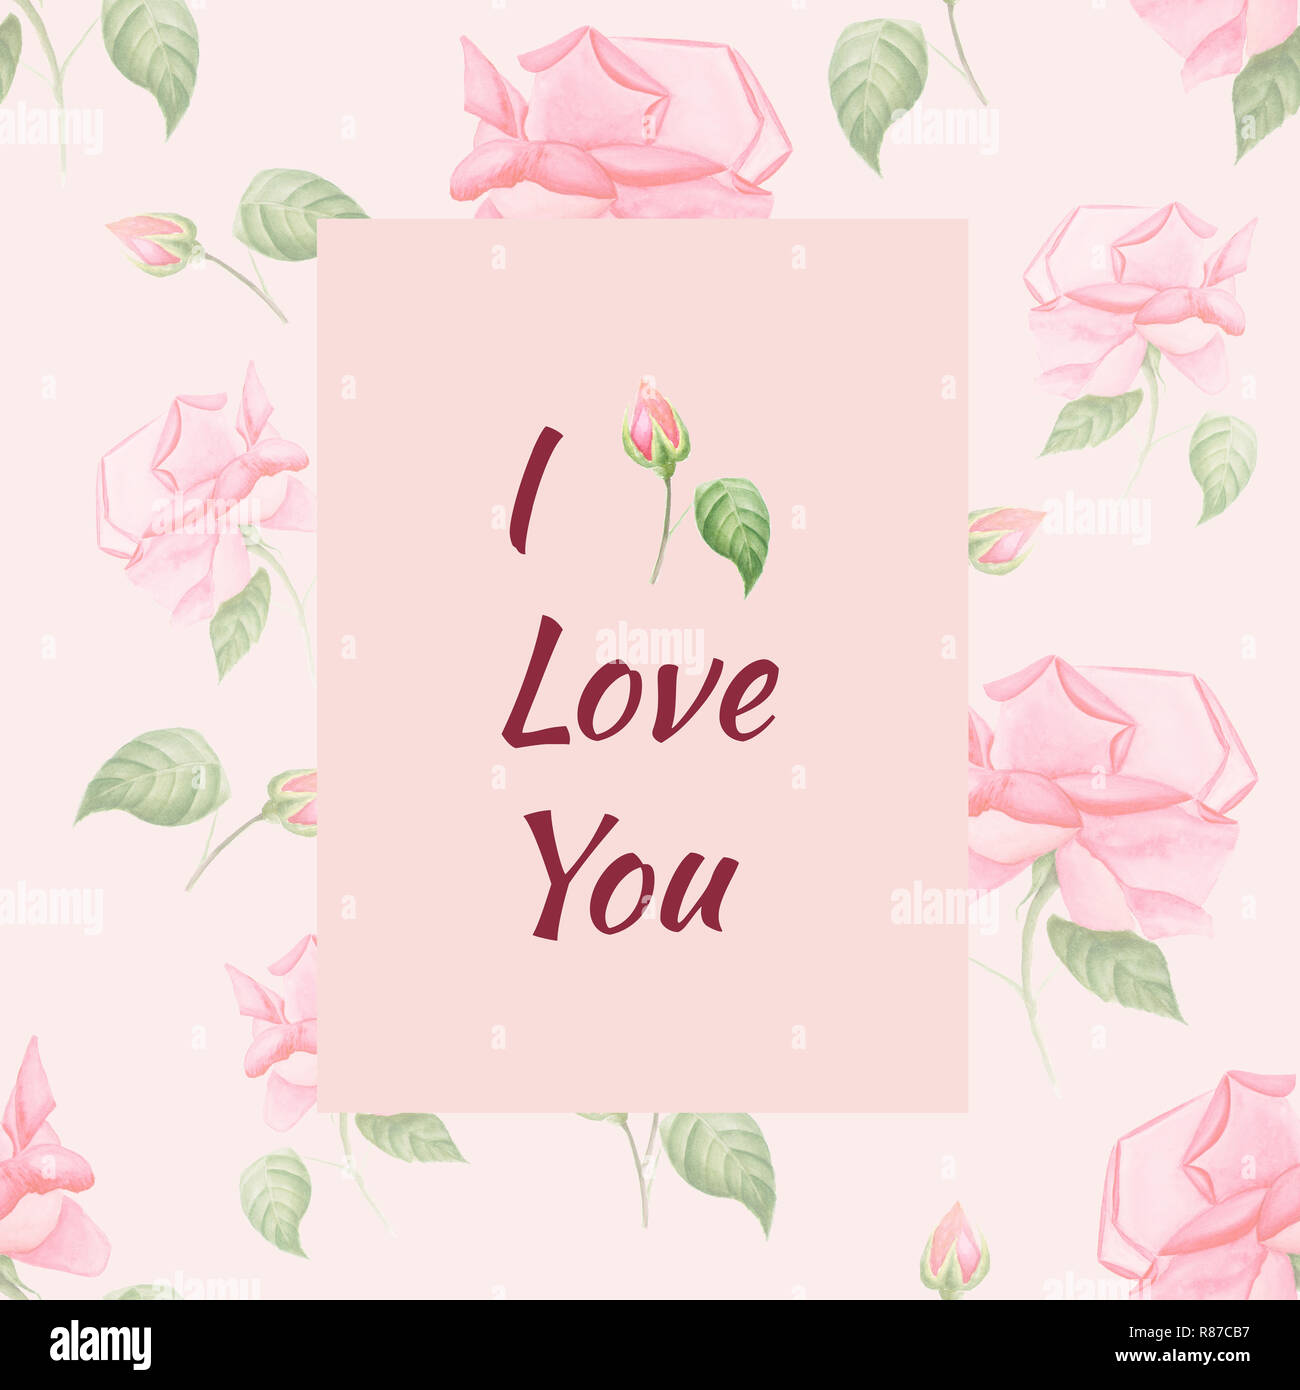 Handpainted Watercolor Greeting Card With Flower Pattern And Text I Love You In Vintage Style Roses On Pink Can Be Used For Birthday Invitation